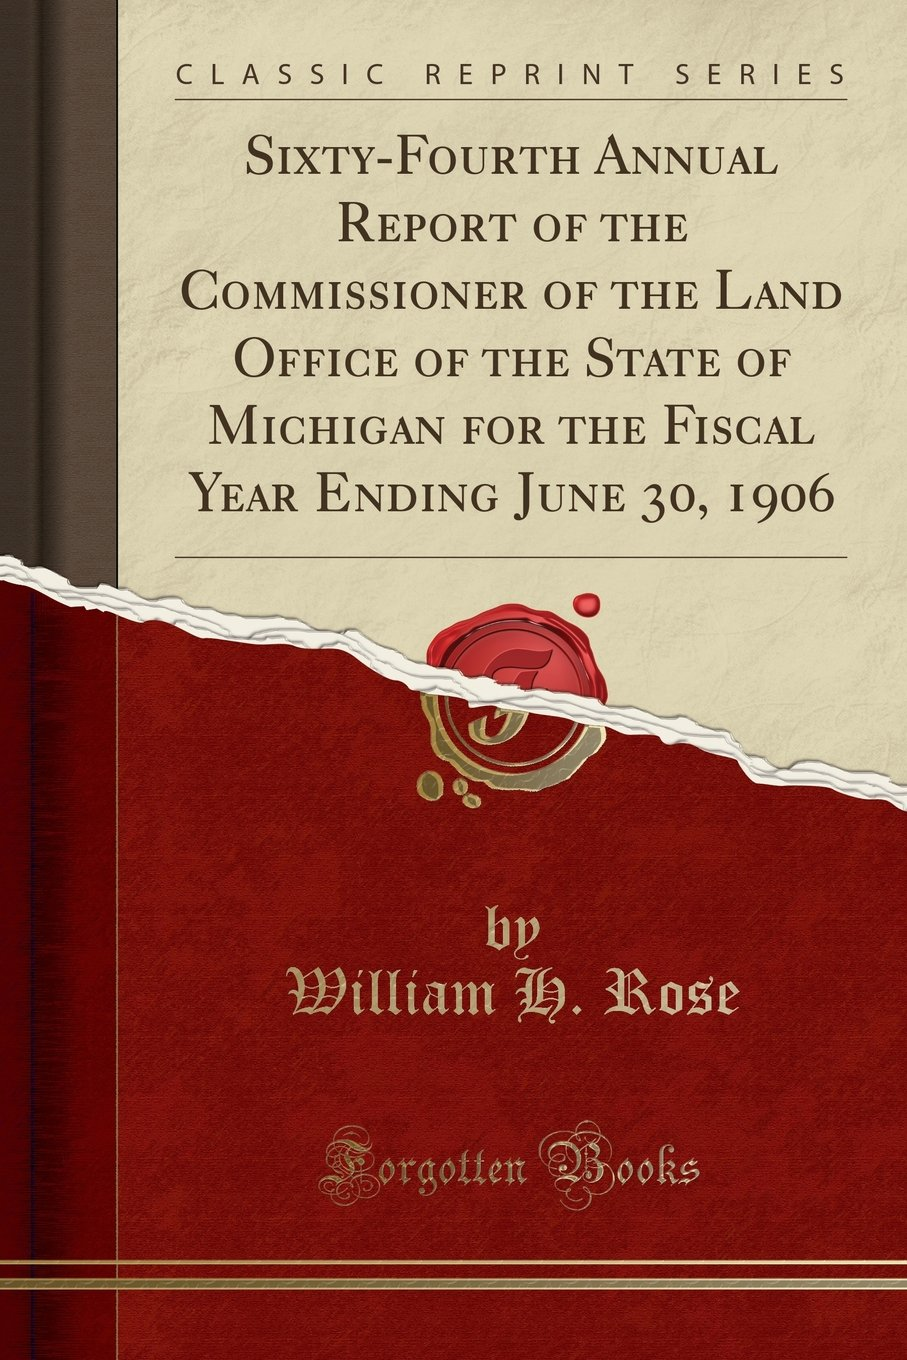 Read Online Sixty-Fourth Annual Report of the Commissioner of the Land Office of the State of Michigan for the Fiscal Year Ending June 30, 1906 (Classic Reprint) ebook